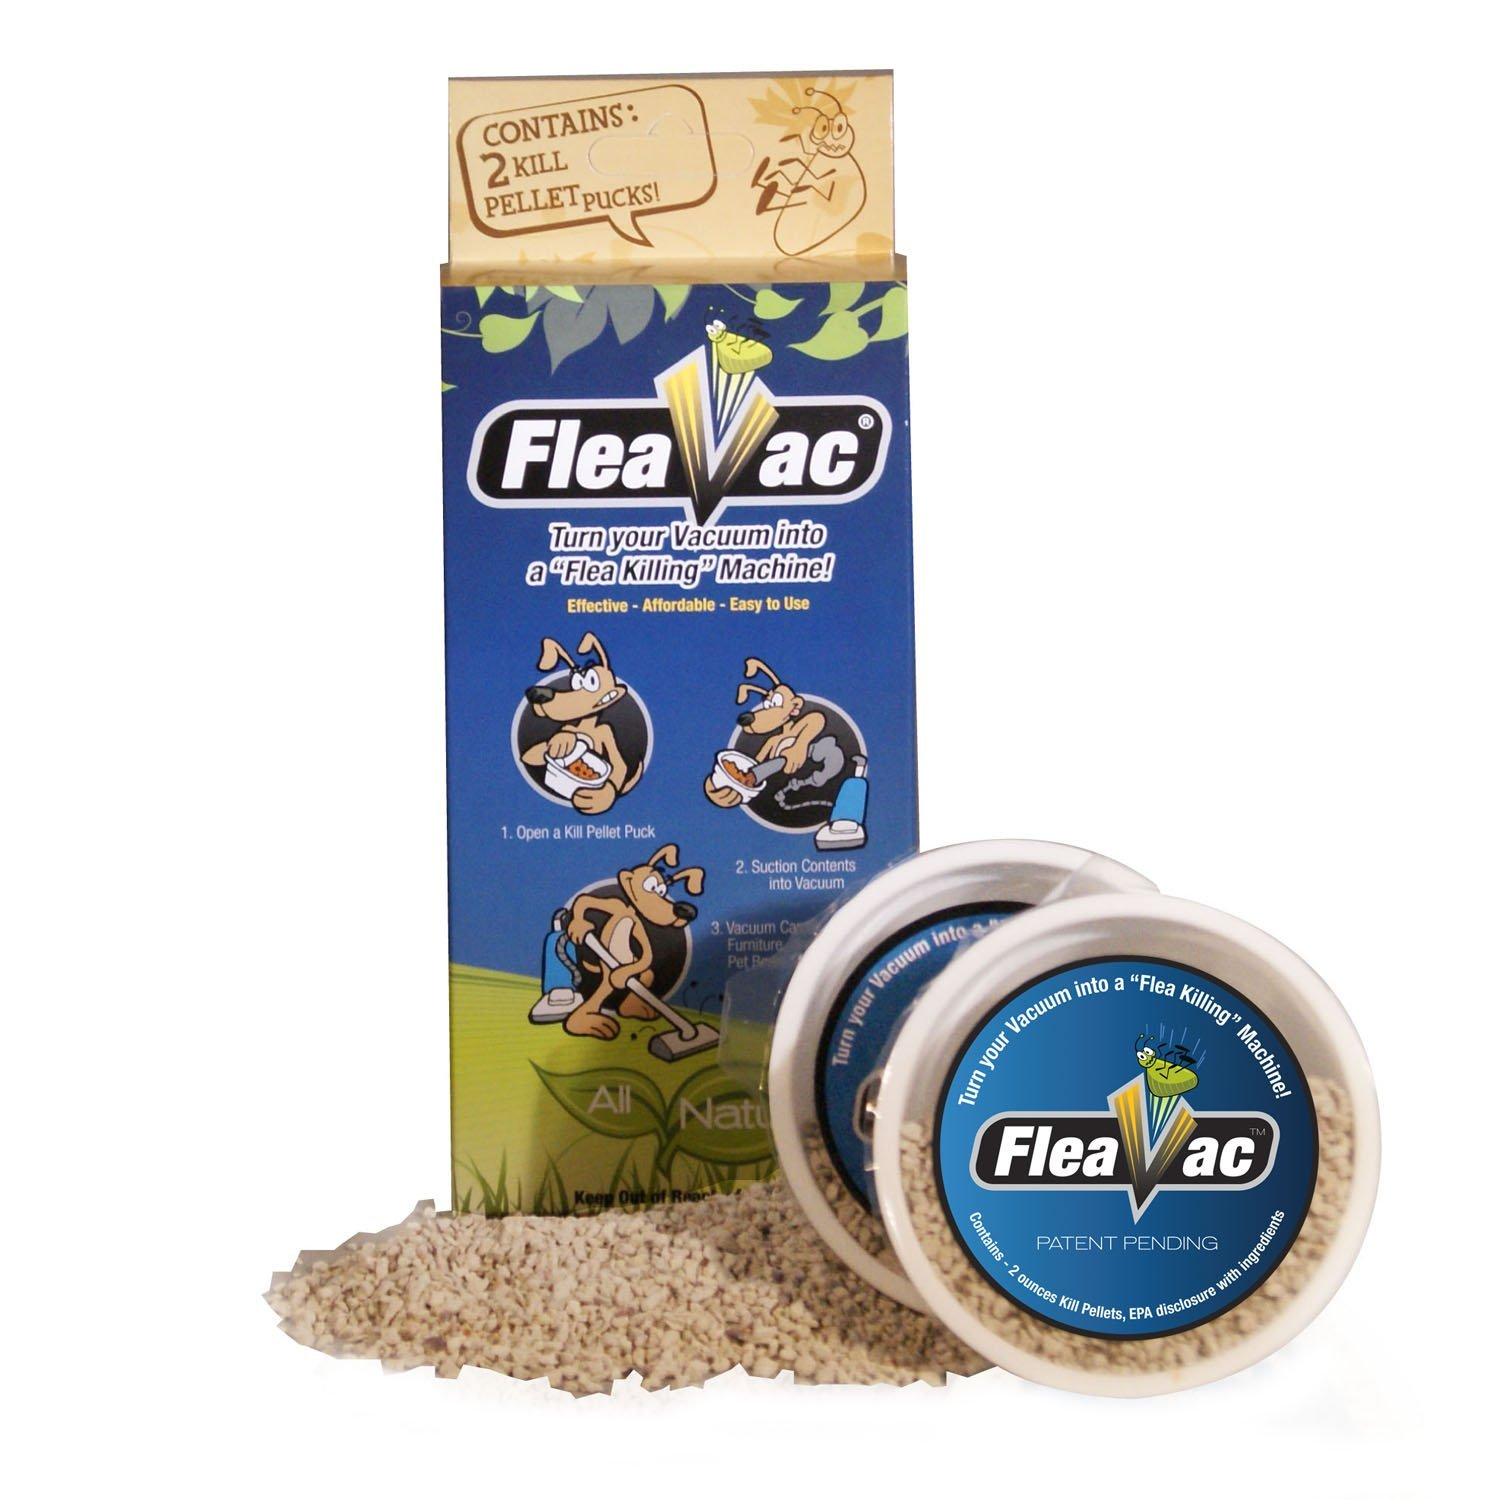 View All Dog Flea, Lice & Tick Control